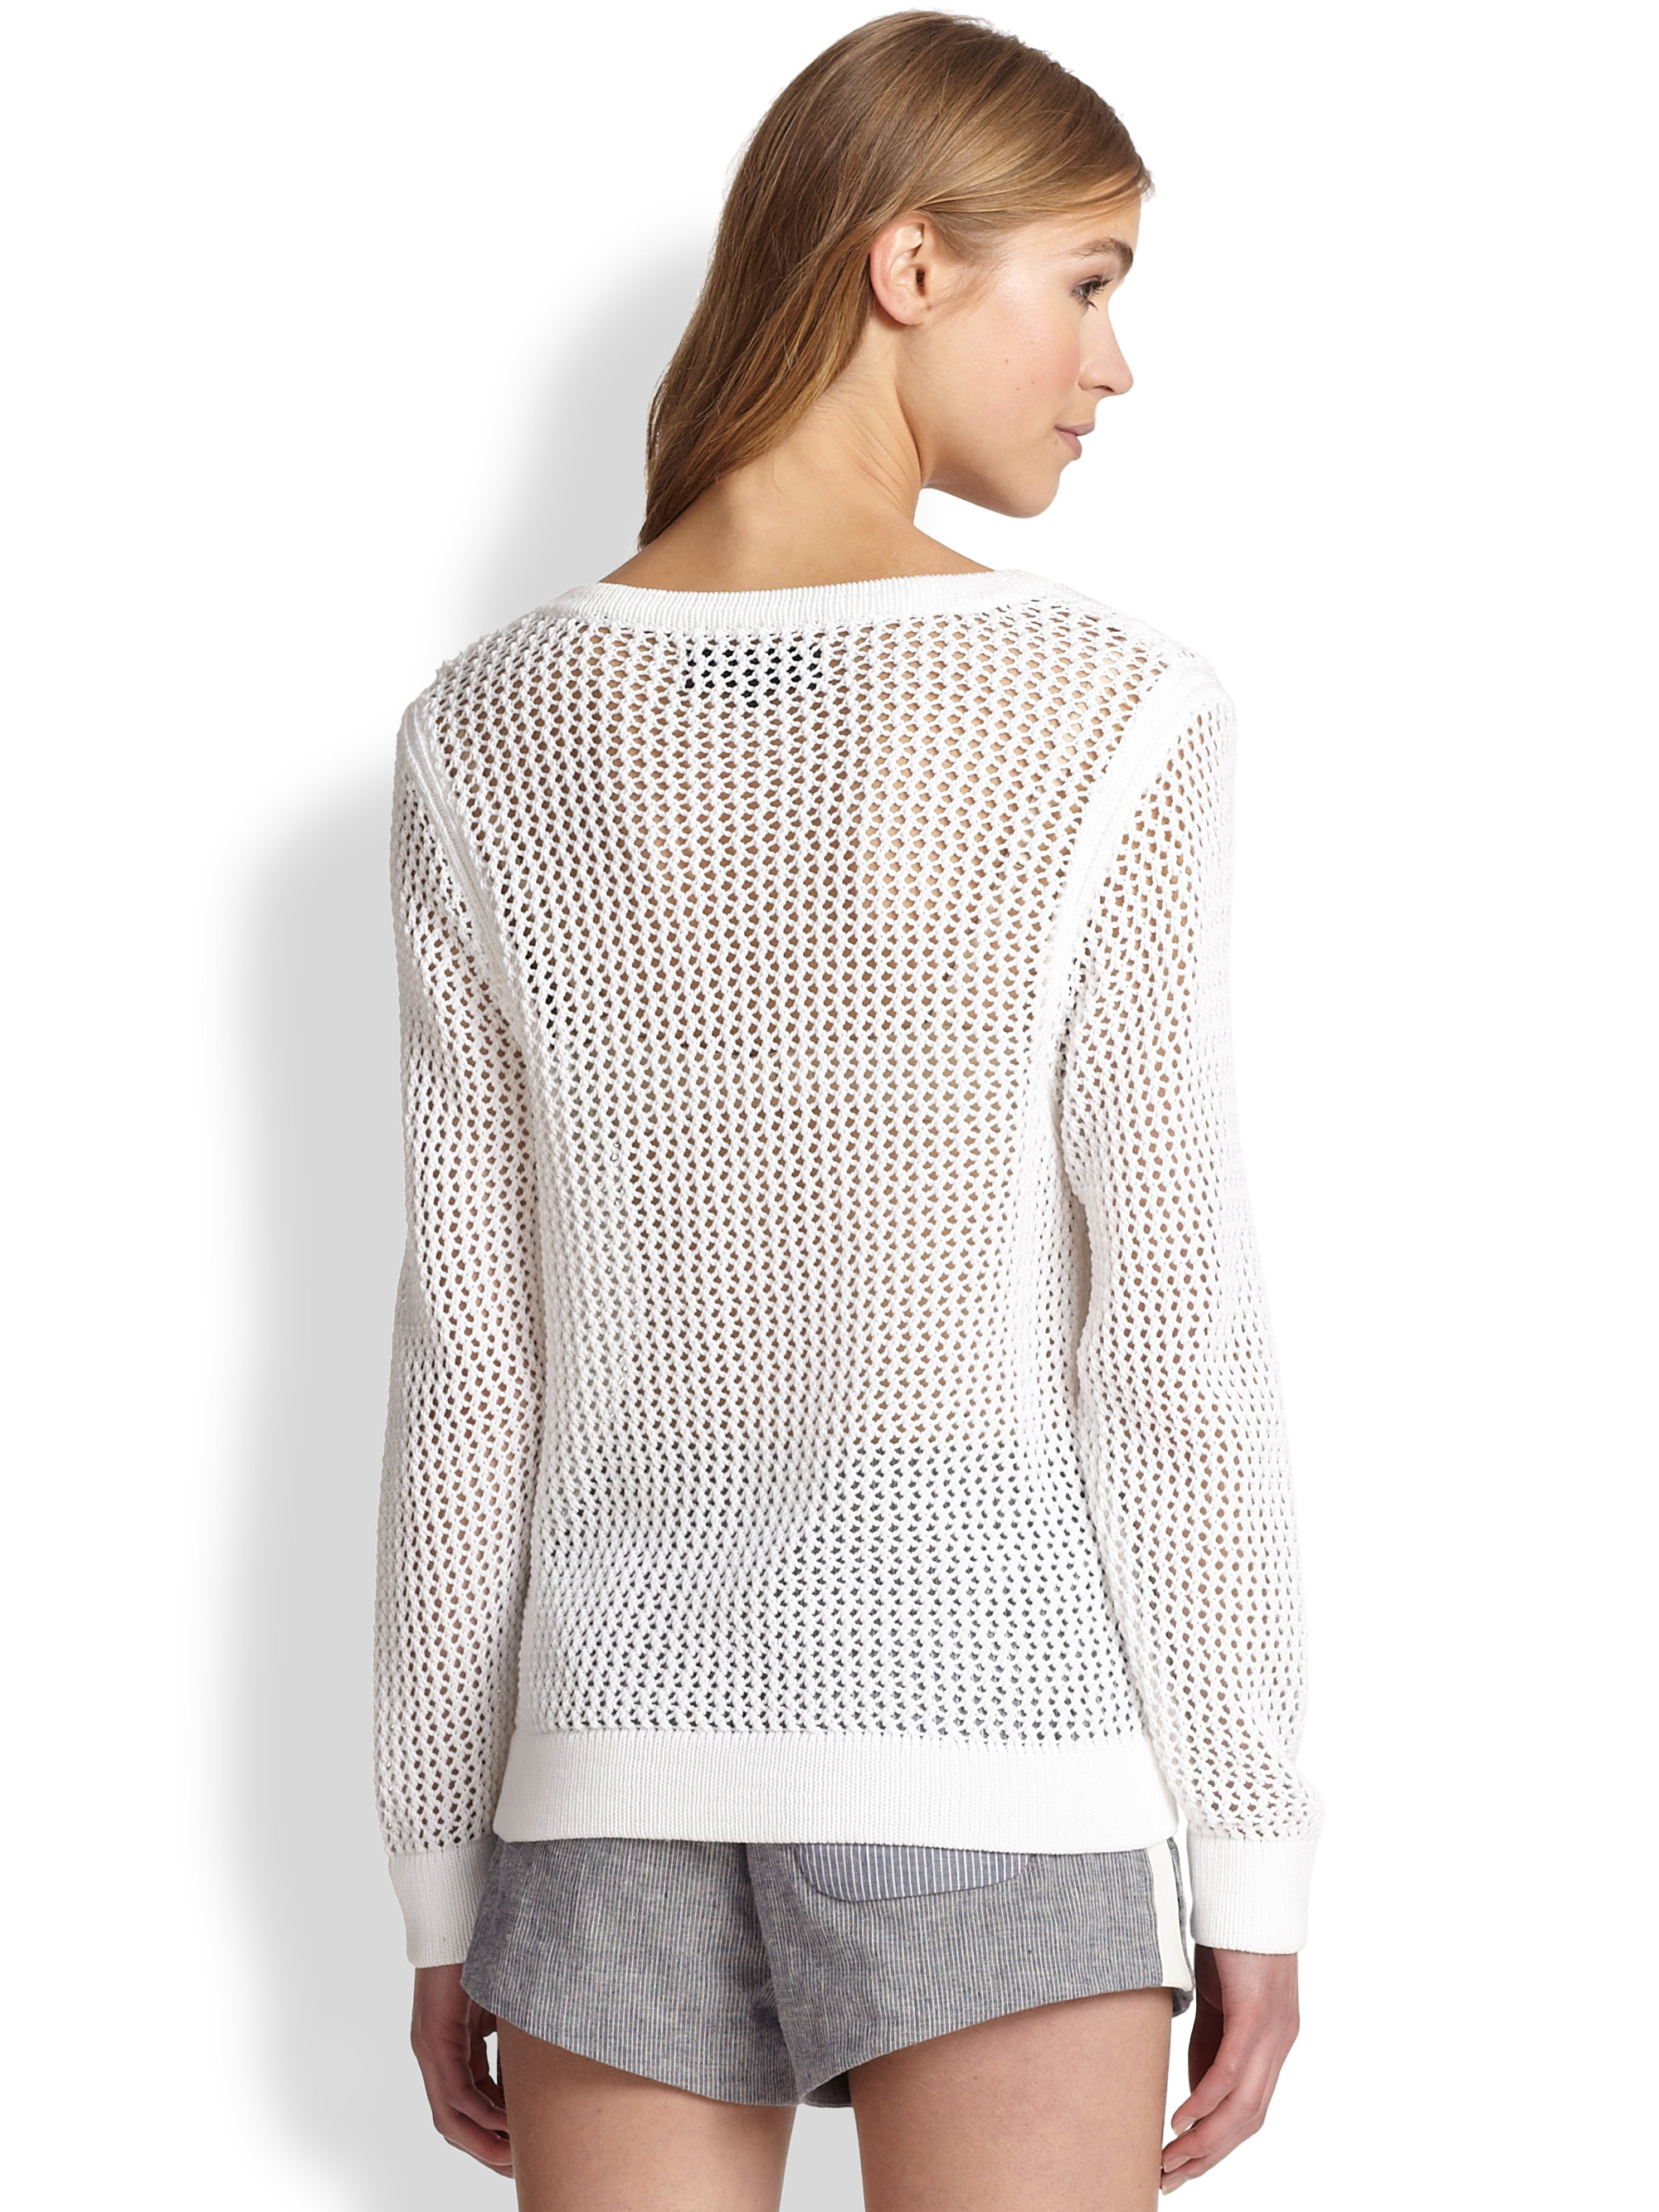 Rag & bone Connie Slouchy Openweave Cotton Sweater in White | Lyst